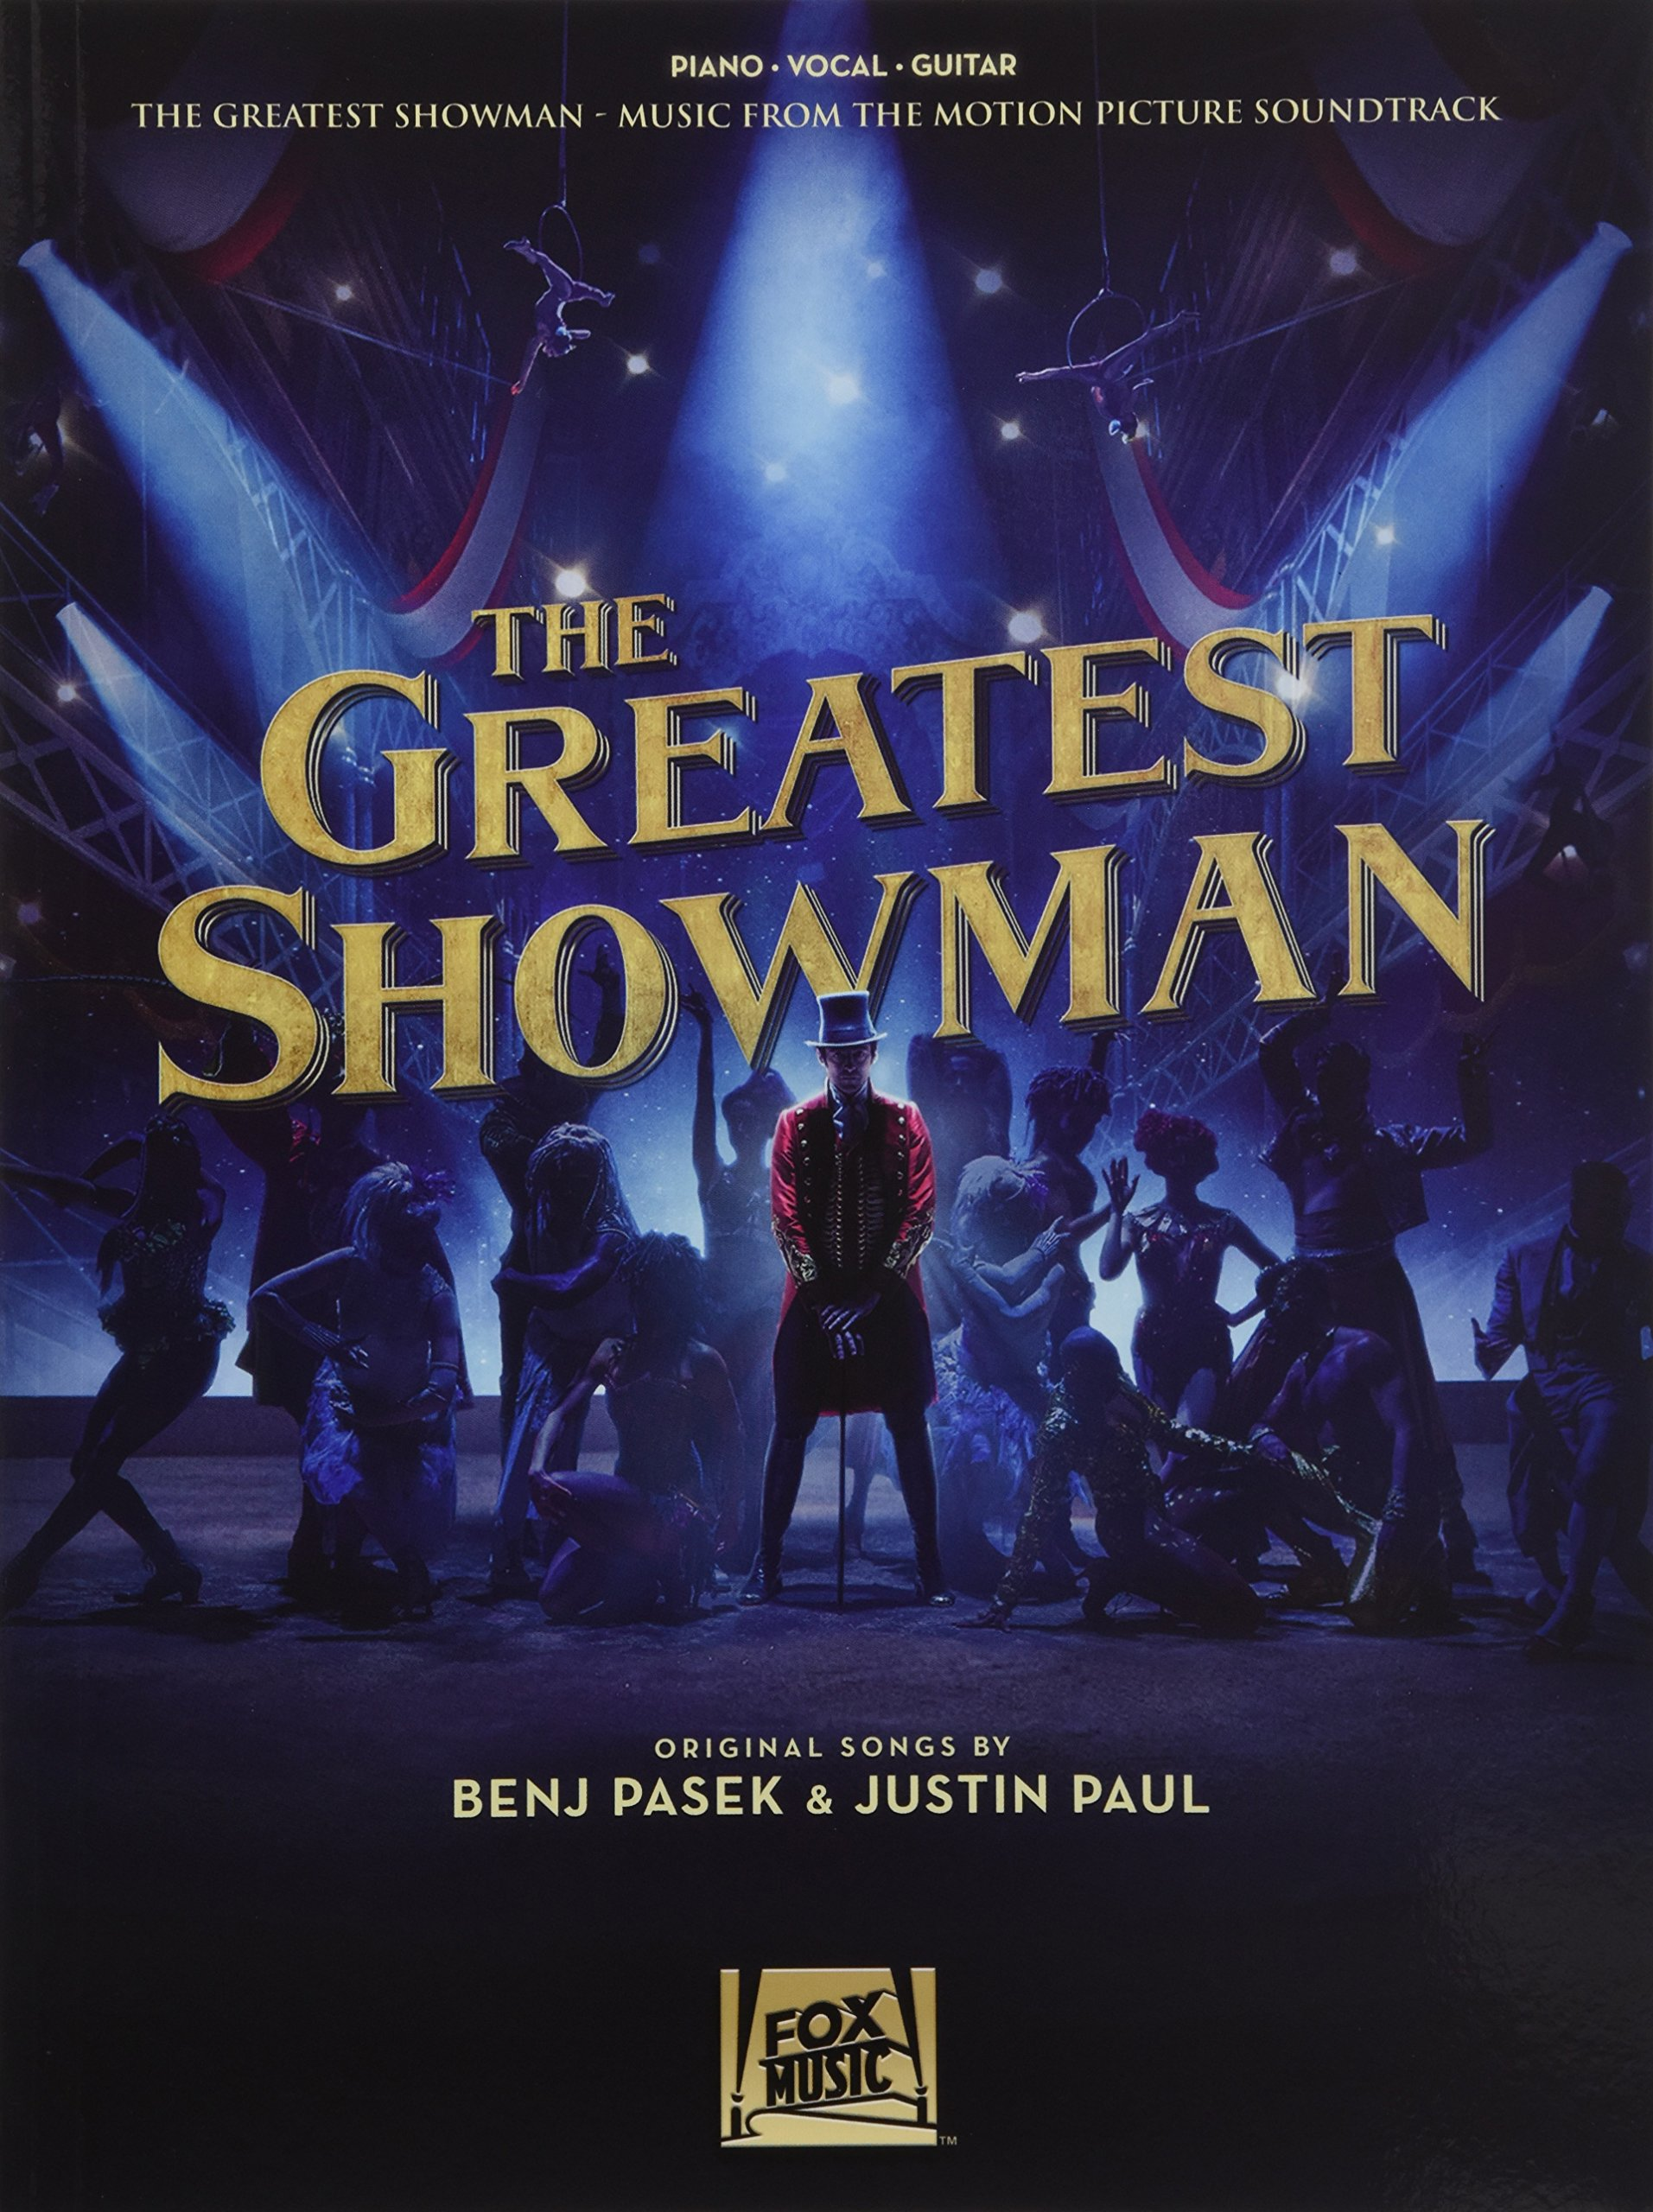 The Greatest Showman Piano Vocal Guitar Amazon Benj